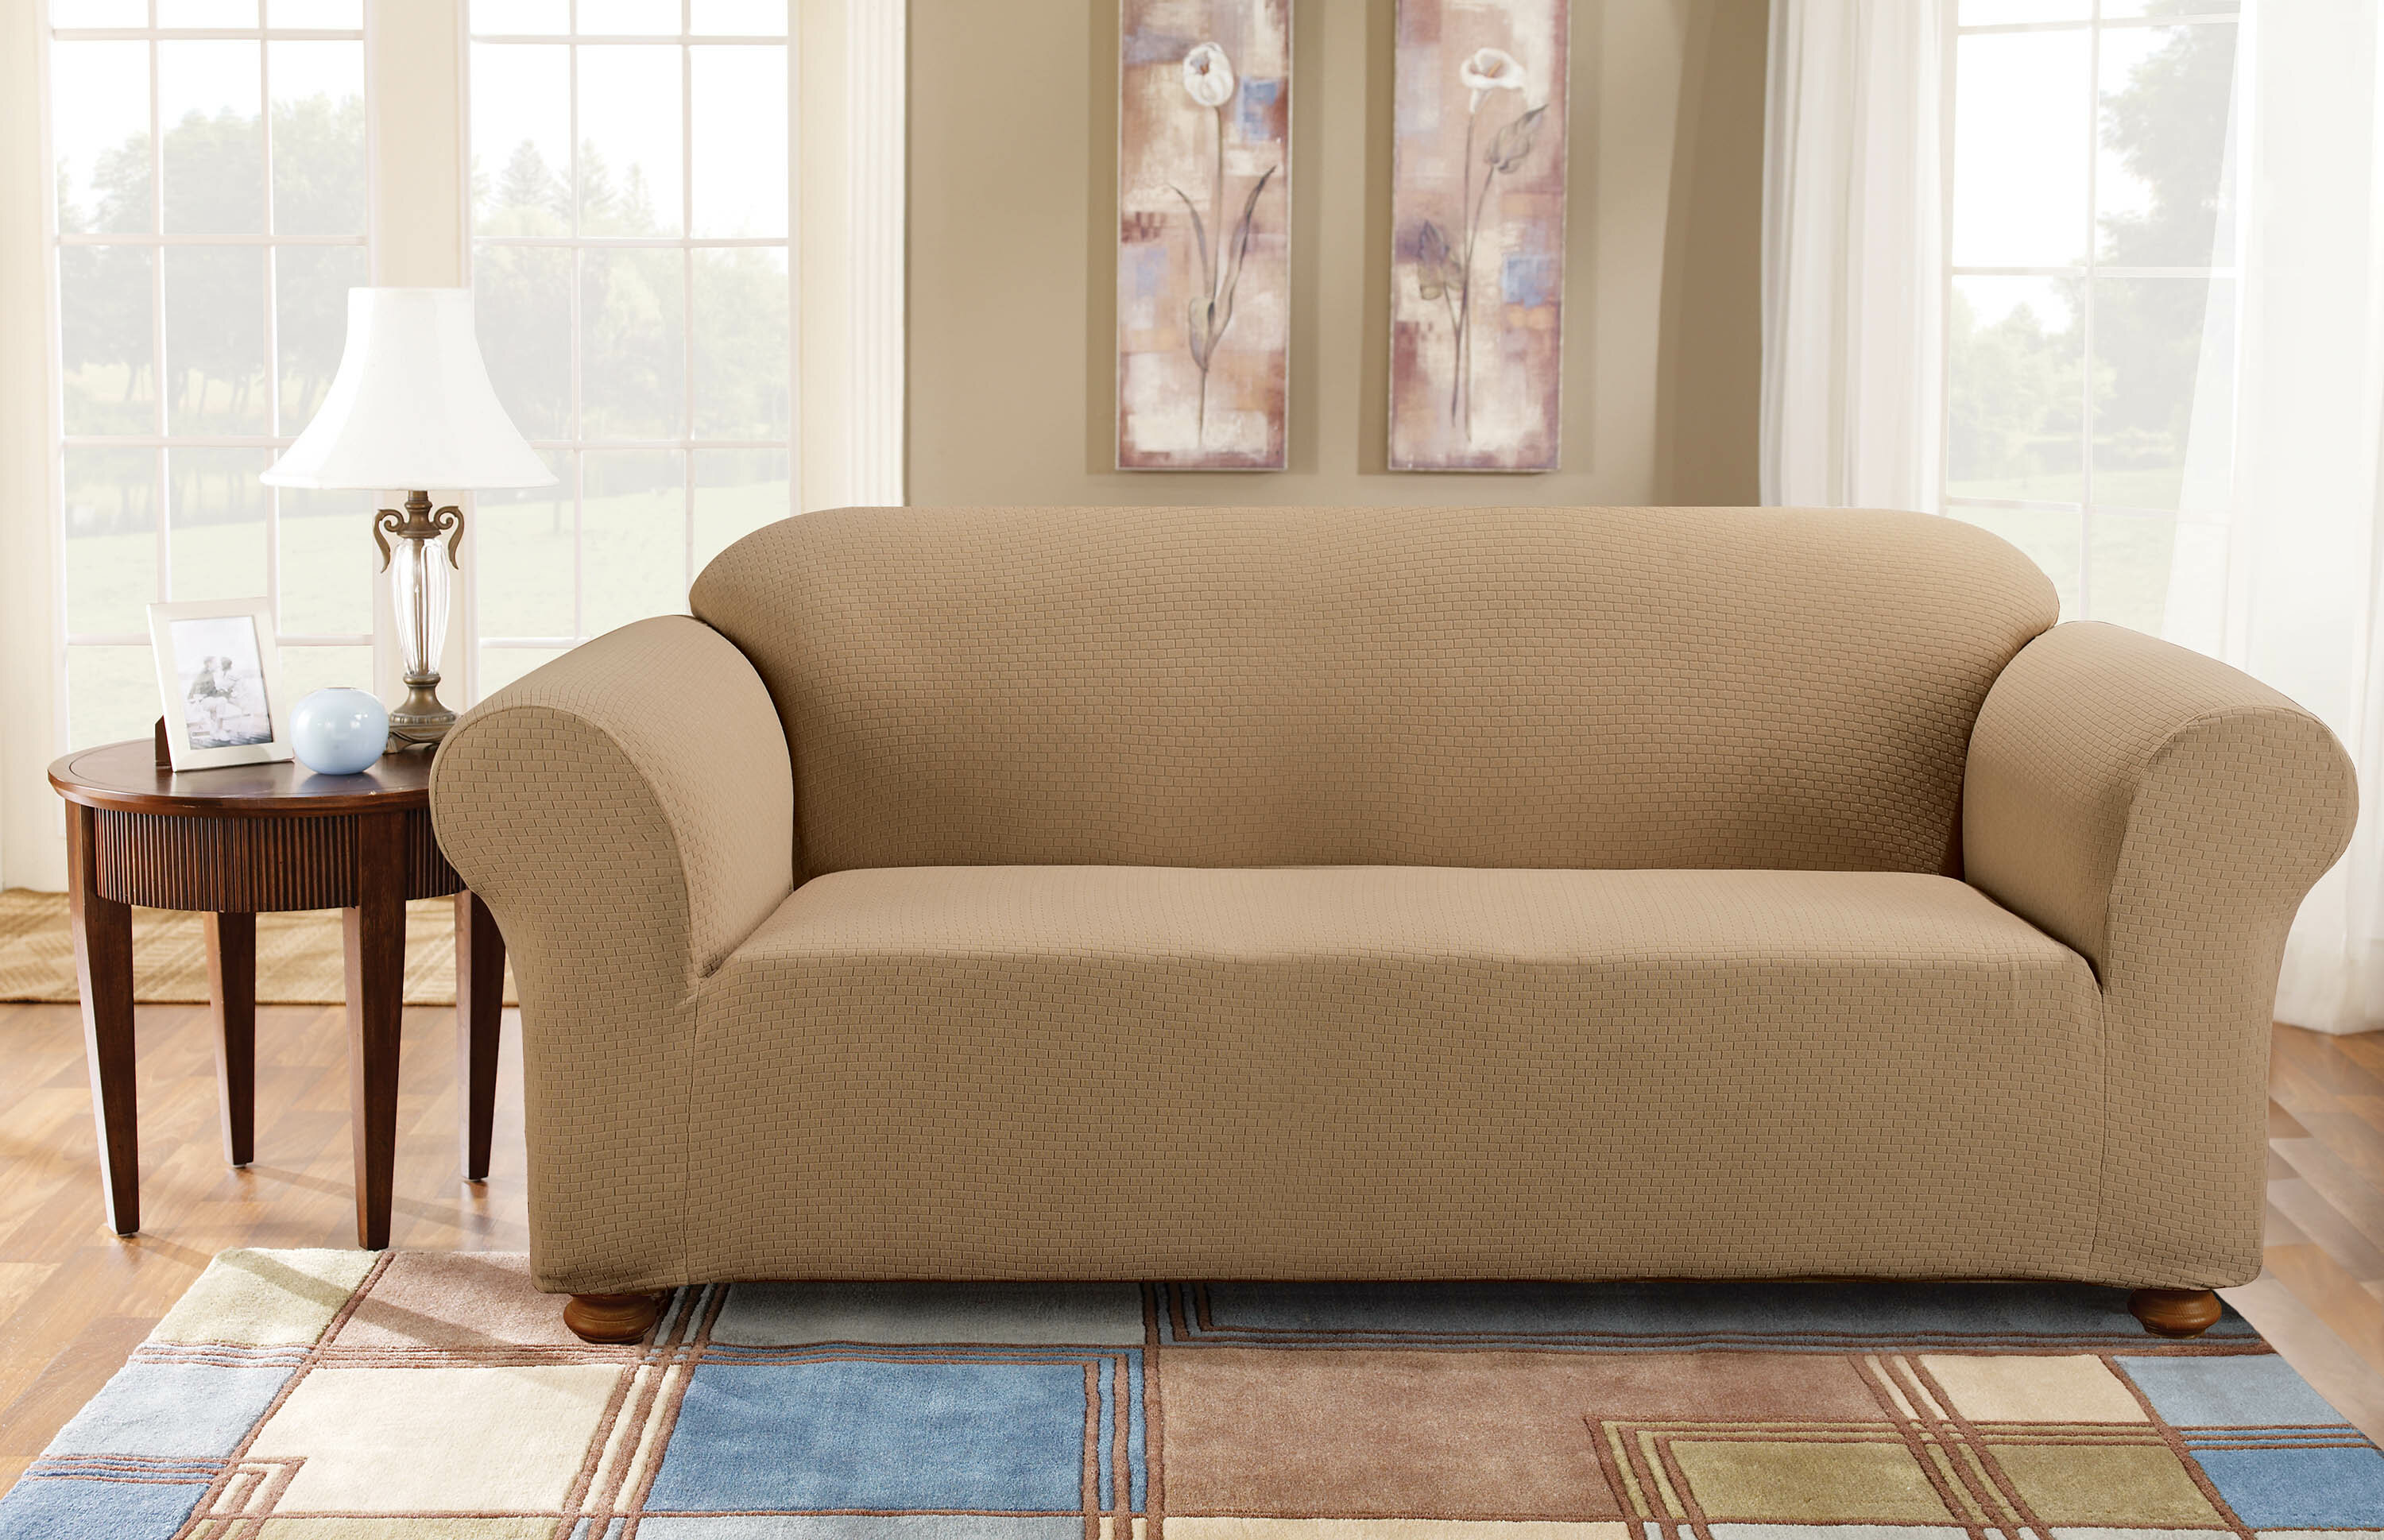 Terrific Simple Stretch Subway Box Cushion Sofa Slipcover Onthecornerstone Fun Painted Chair Ideas Images Onthecornerstoneorg